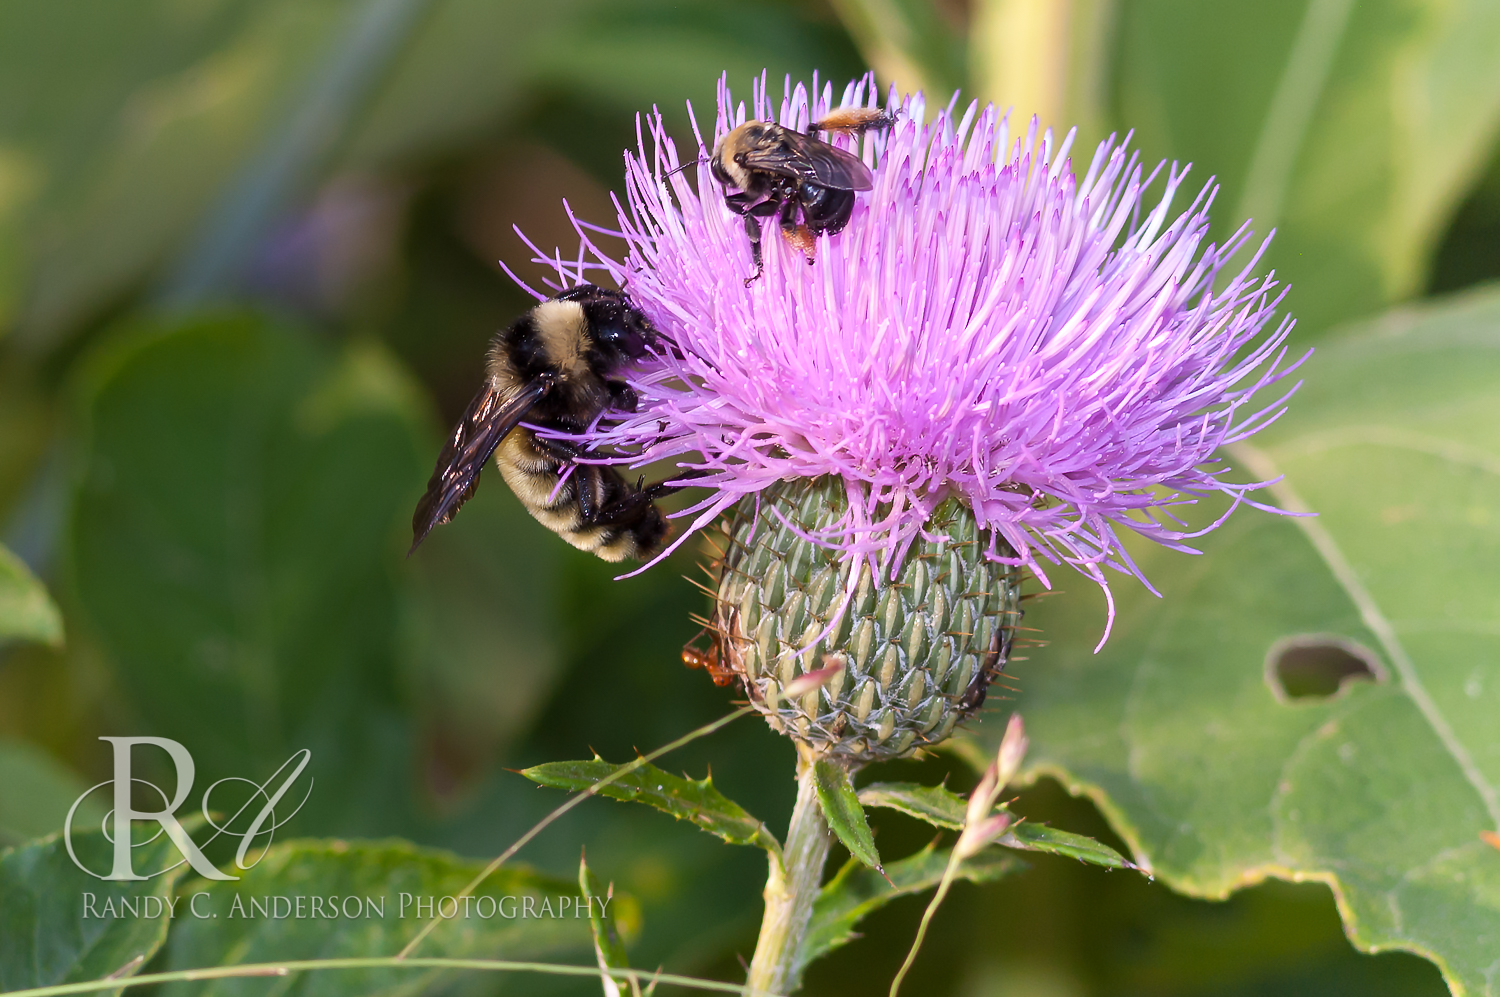 A  Bumblebee dwarfs a small Carpenter bee on this thistle plant.